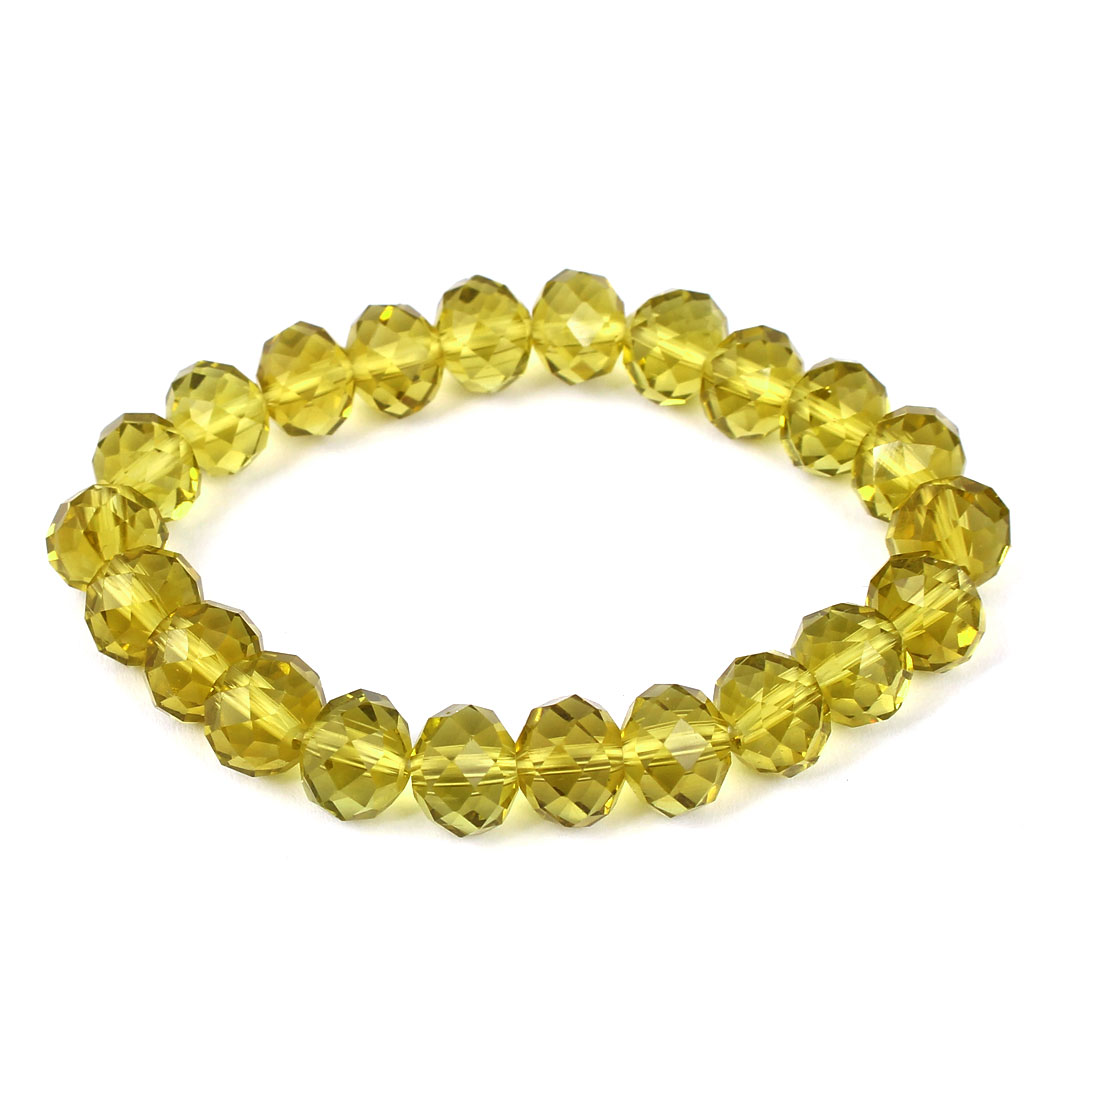 Girl Lady Gift Party Charm Fashion Jewelry Bling Elastic Crystal Bracelet Yellow